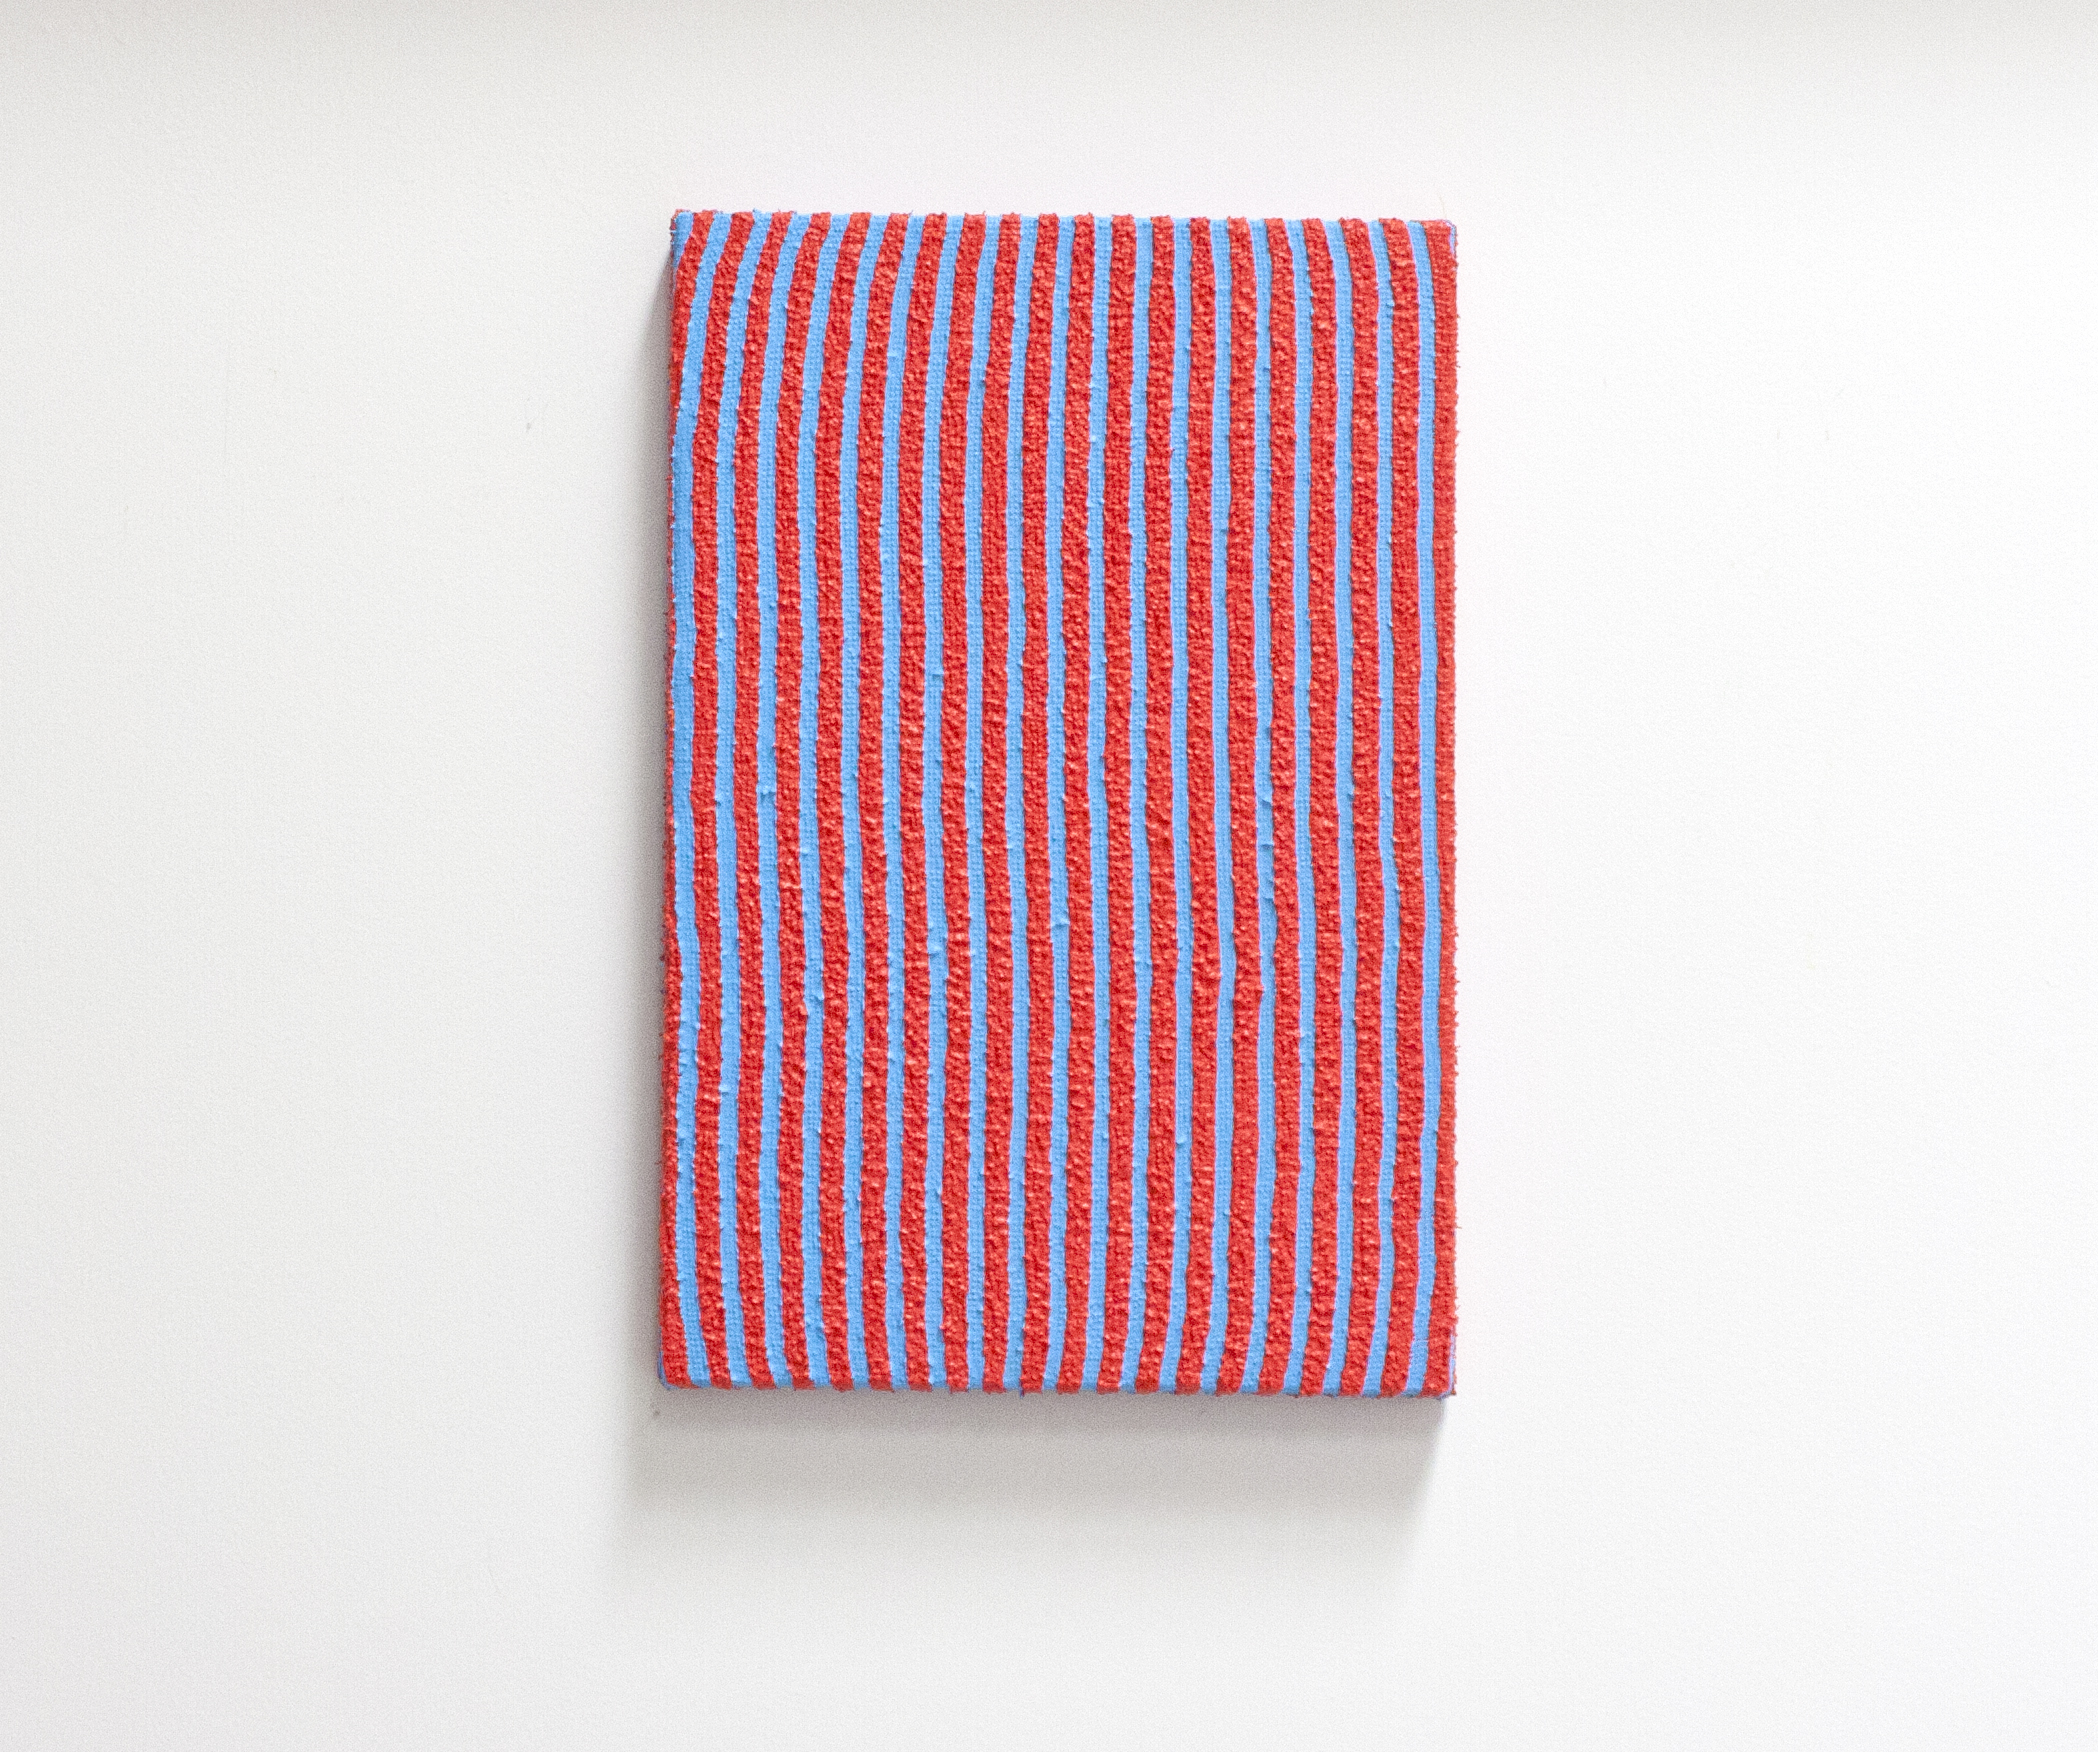 red kitchen towel with blue gullies